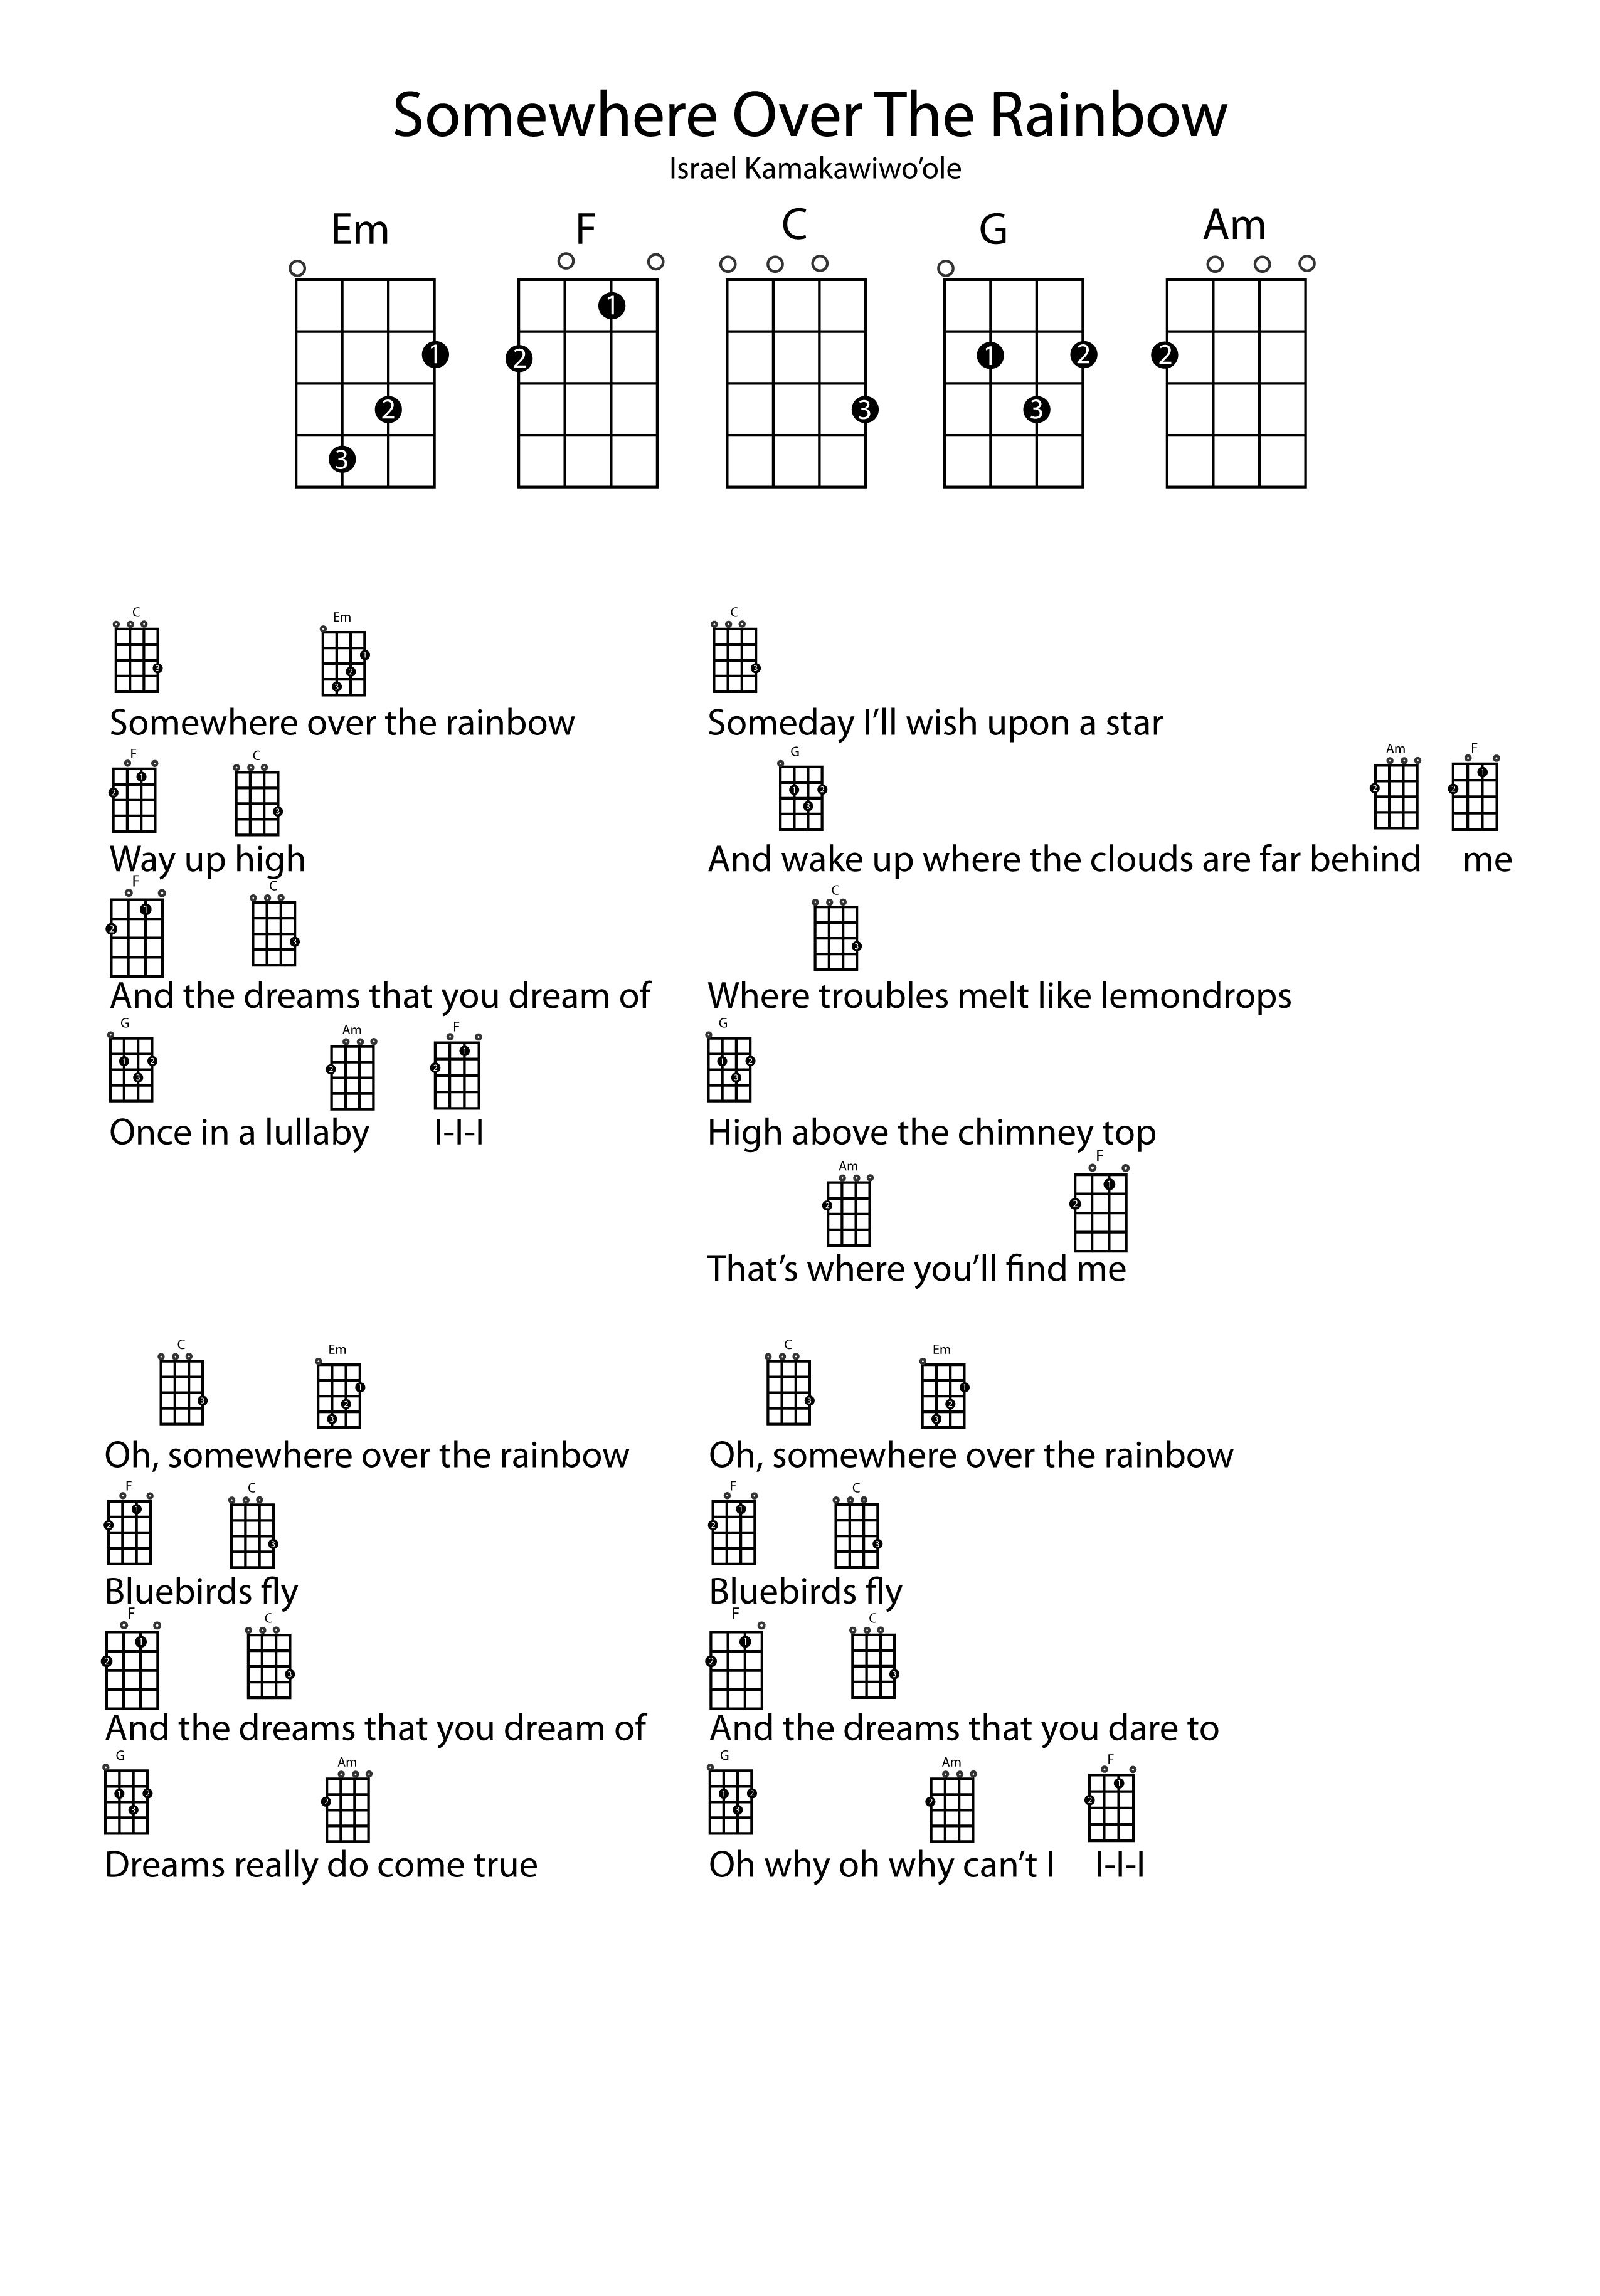 How To Play Over The Rainbow On Ukulele : rainbow, ukulele, Somewhere, Rainbow.jpg, (2551×3661), Ukulele, Songs, Beginner,, Songs,, Chords